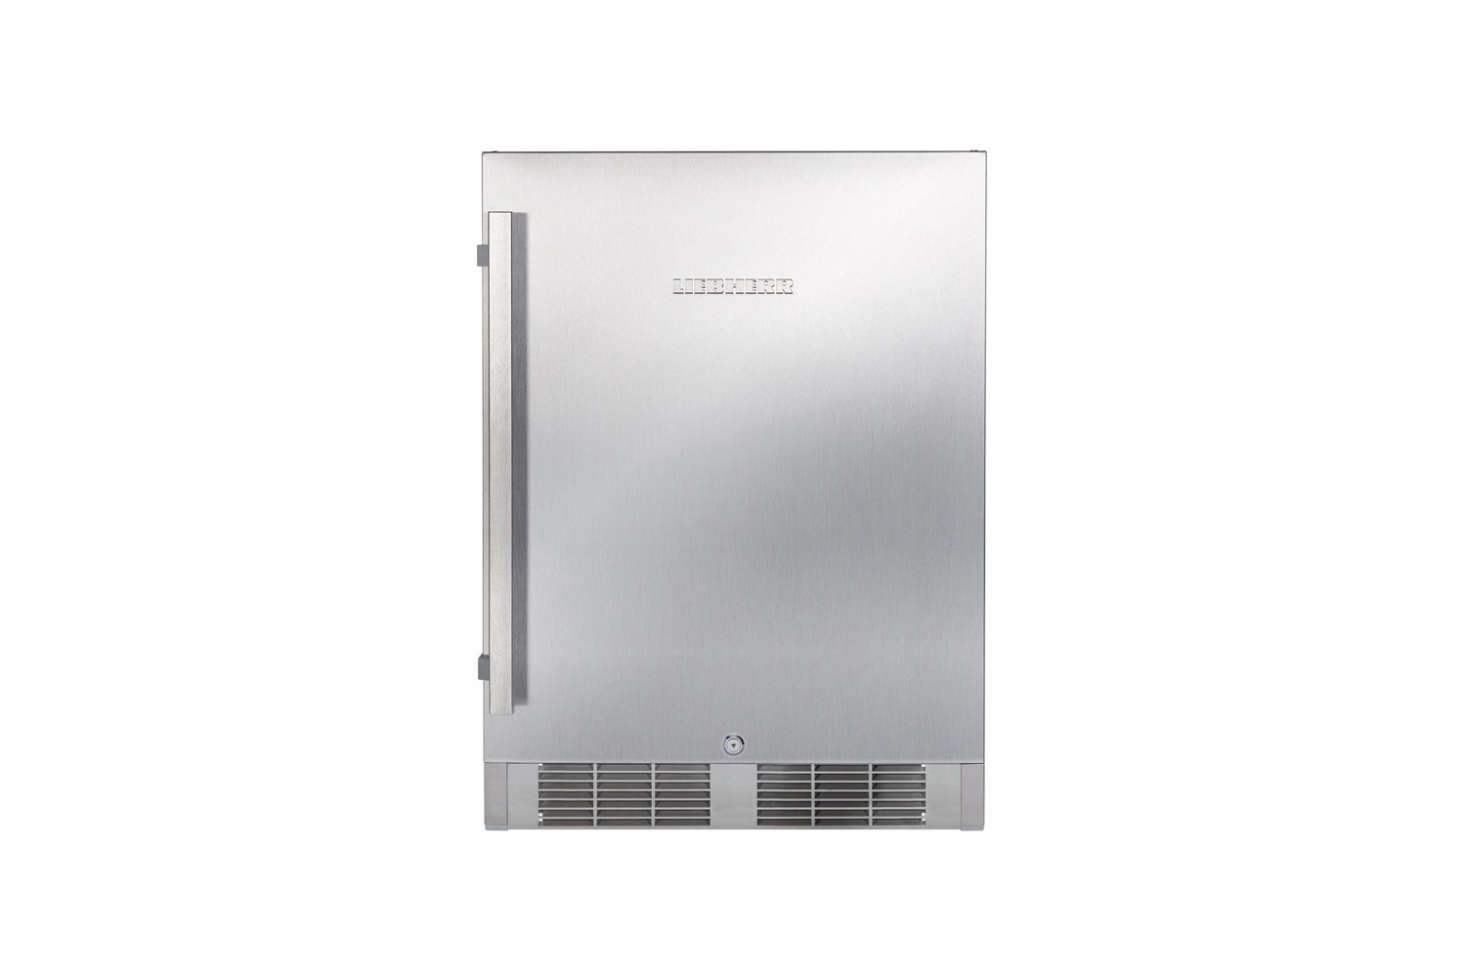 The Liebherr  Inch Undercounter Compact Refrigerator (RO5) is $